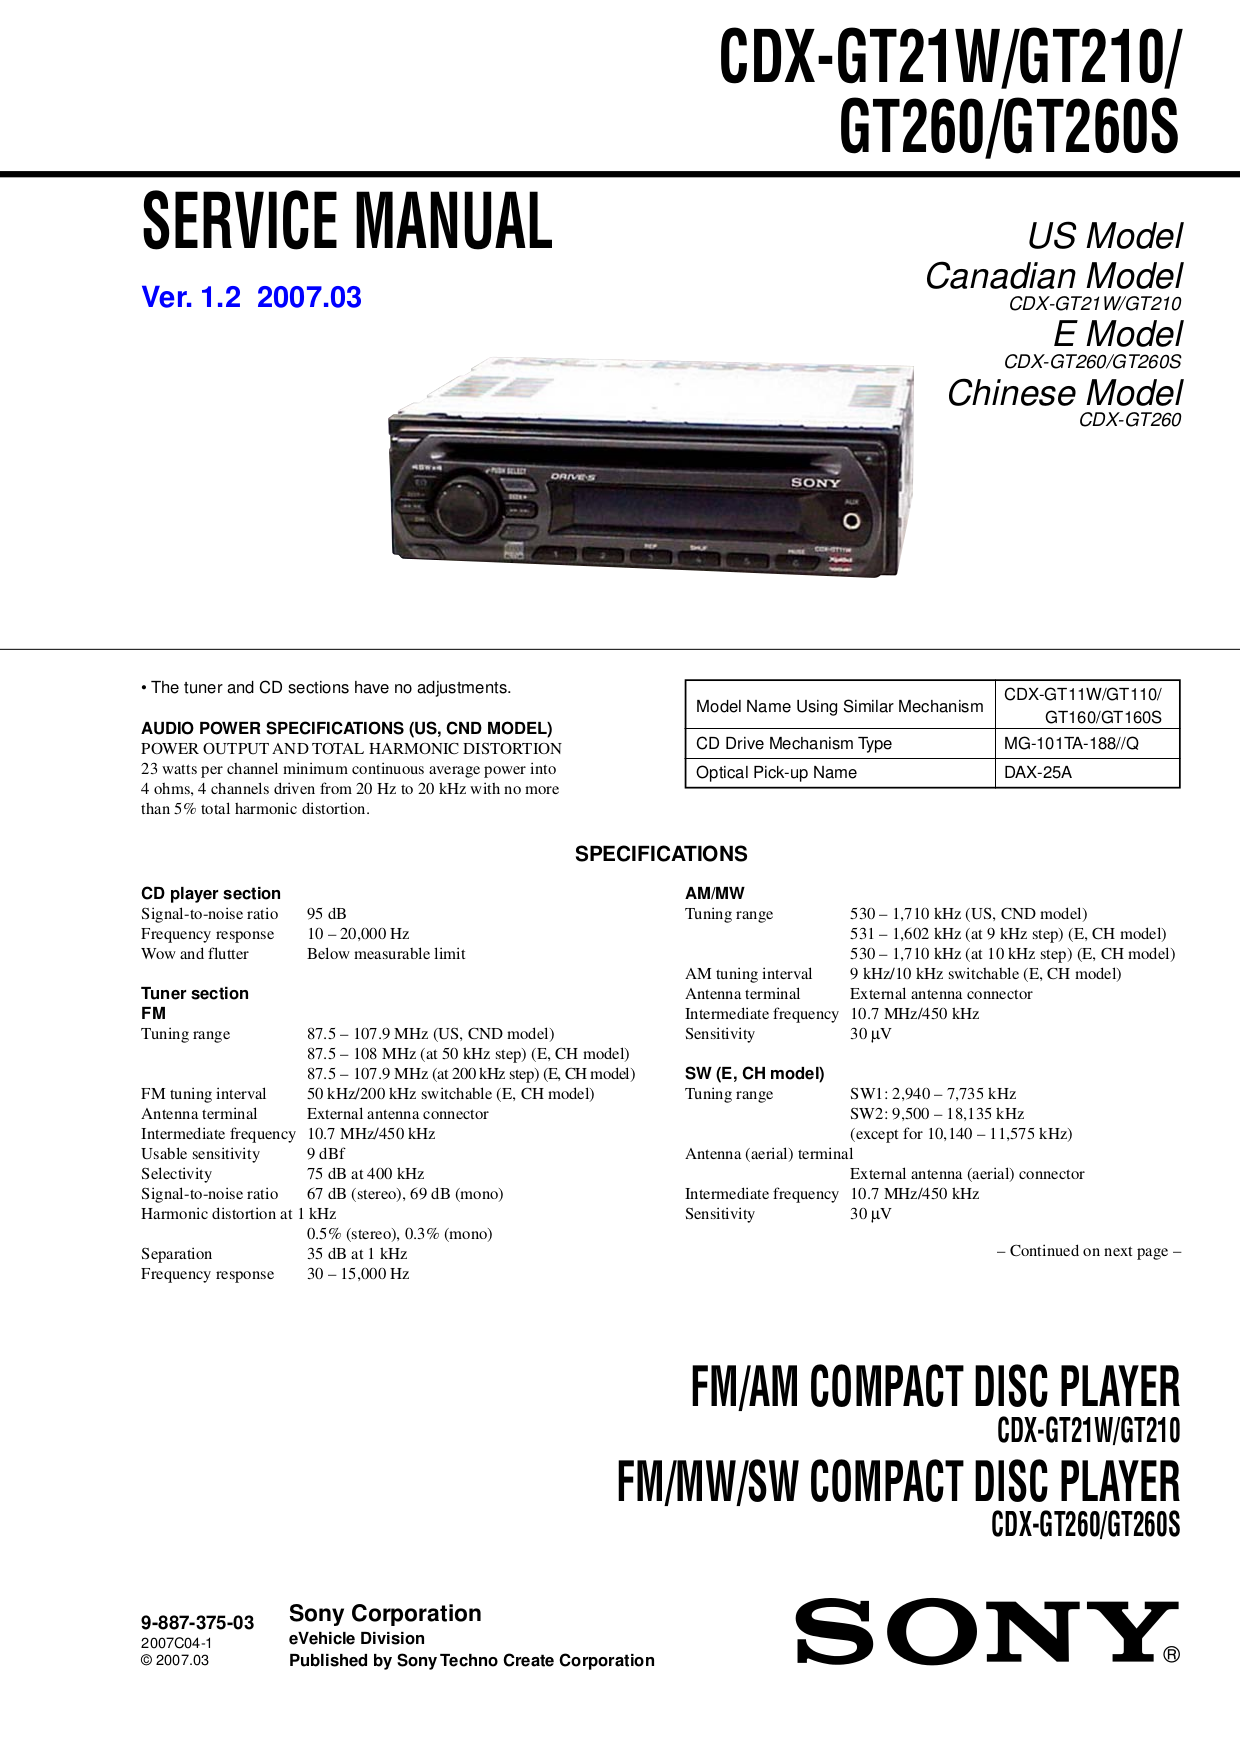 cdx gt21w gt210 gt260.pdf 0 download free pdf for sony cdx gt210 car receiver manual sony cdx gt210 wiring diagram at couponss.co